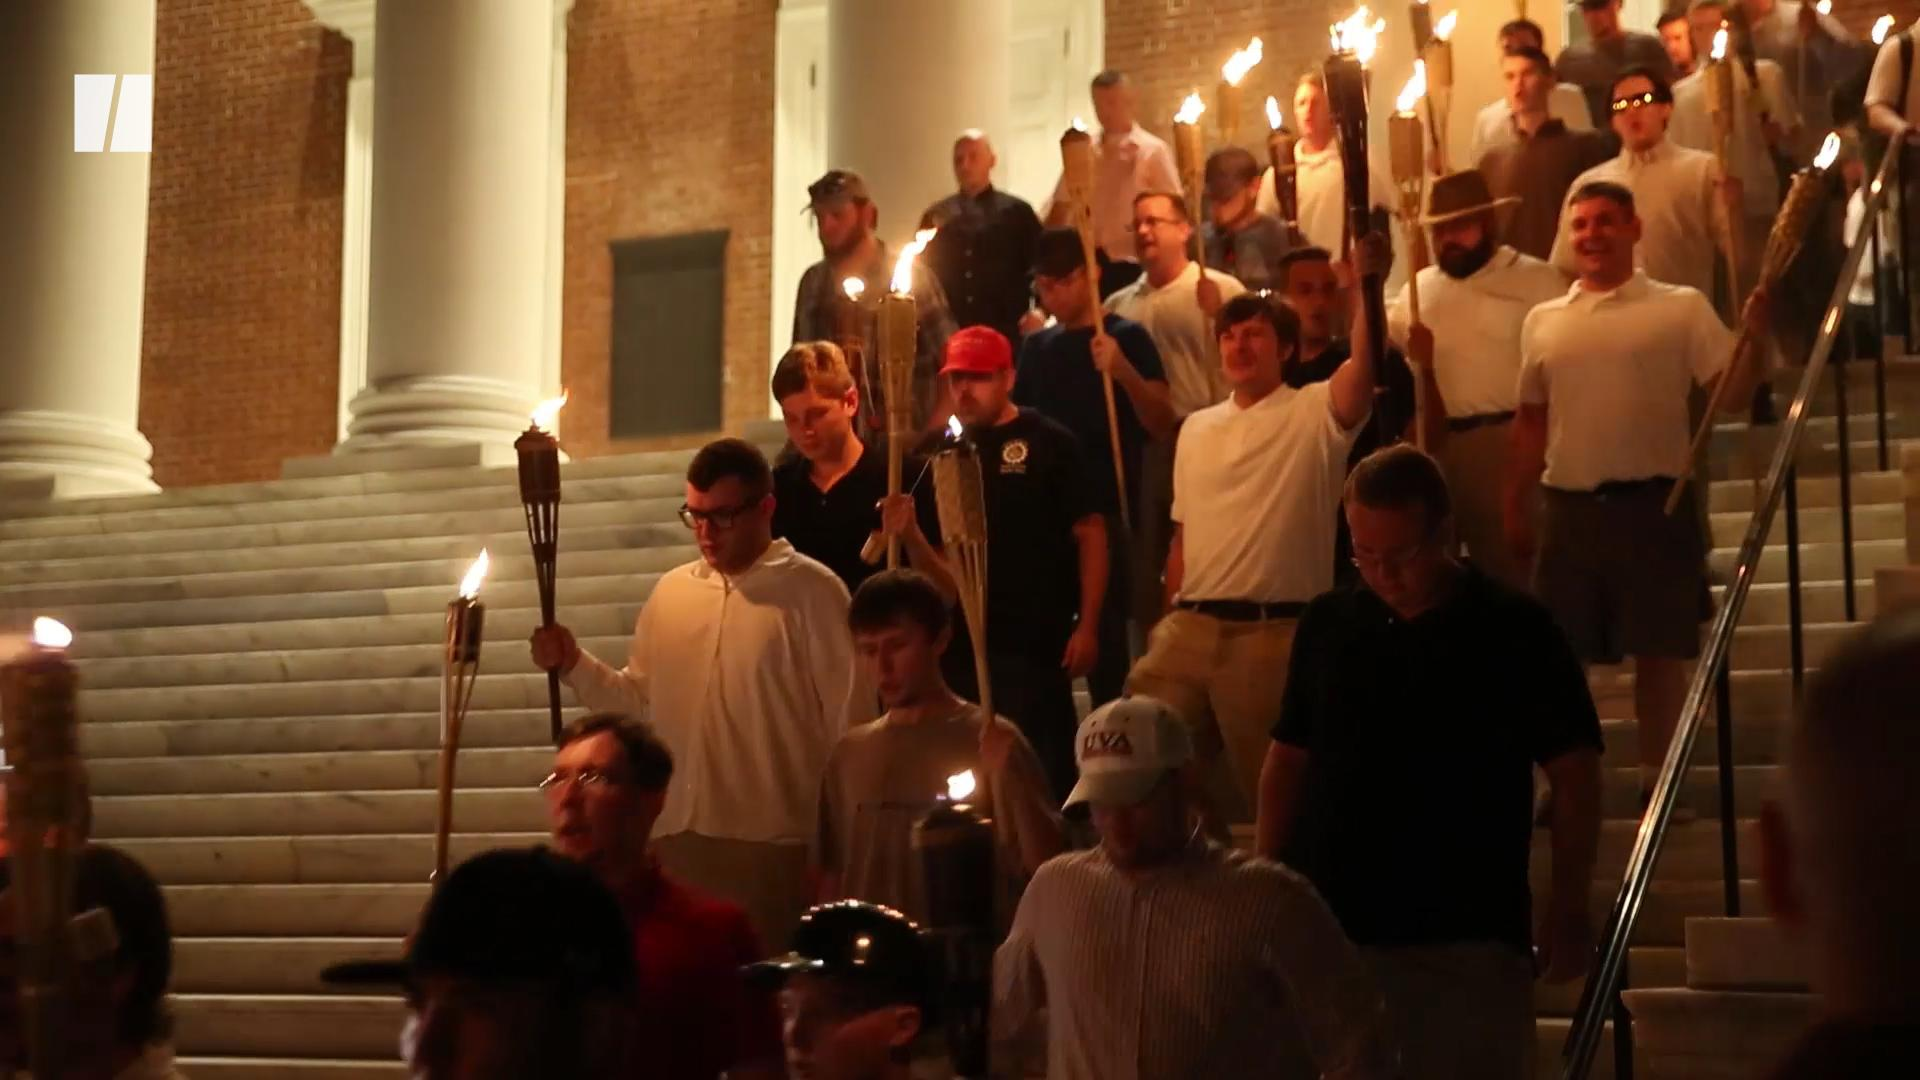 Charlottesville Students Walk Out, Demand Reform After Racist 4chan Threat